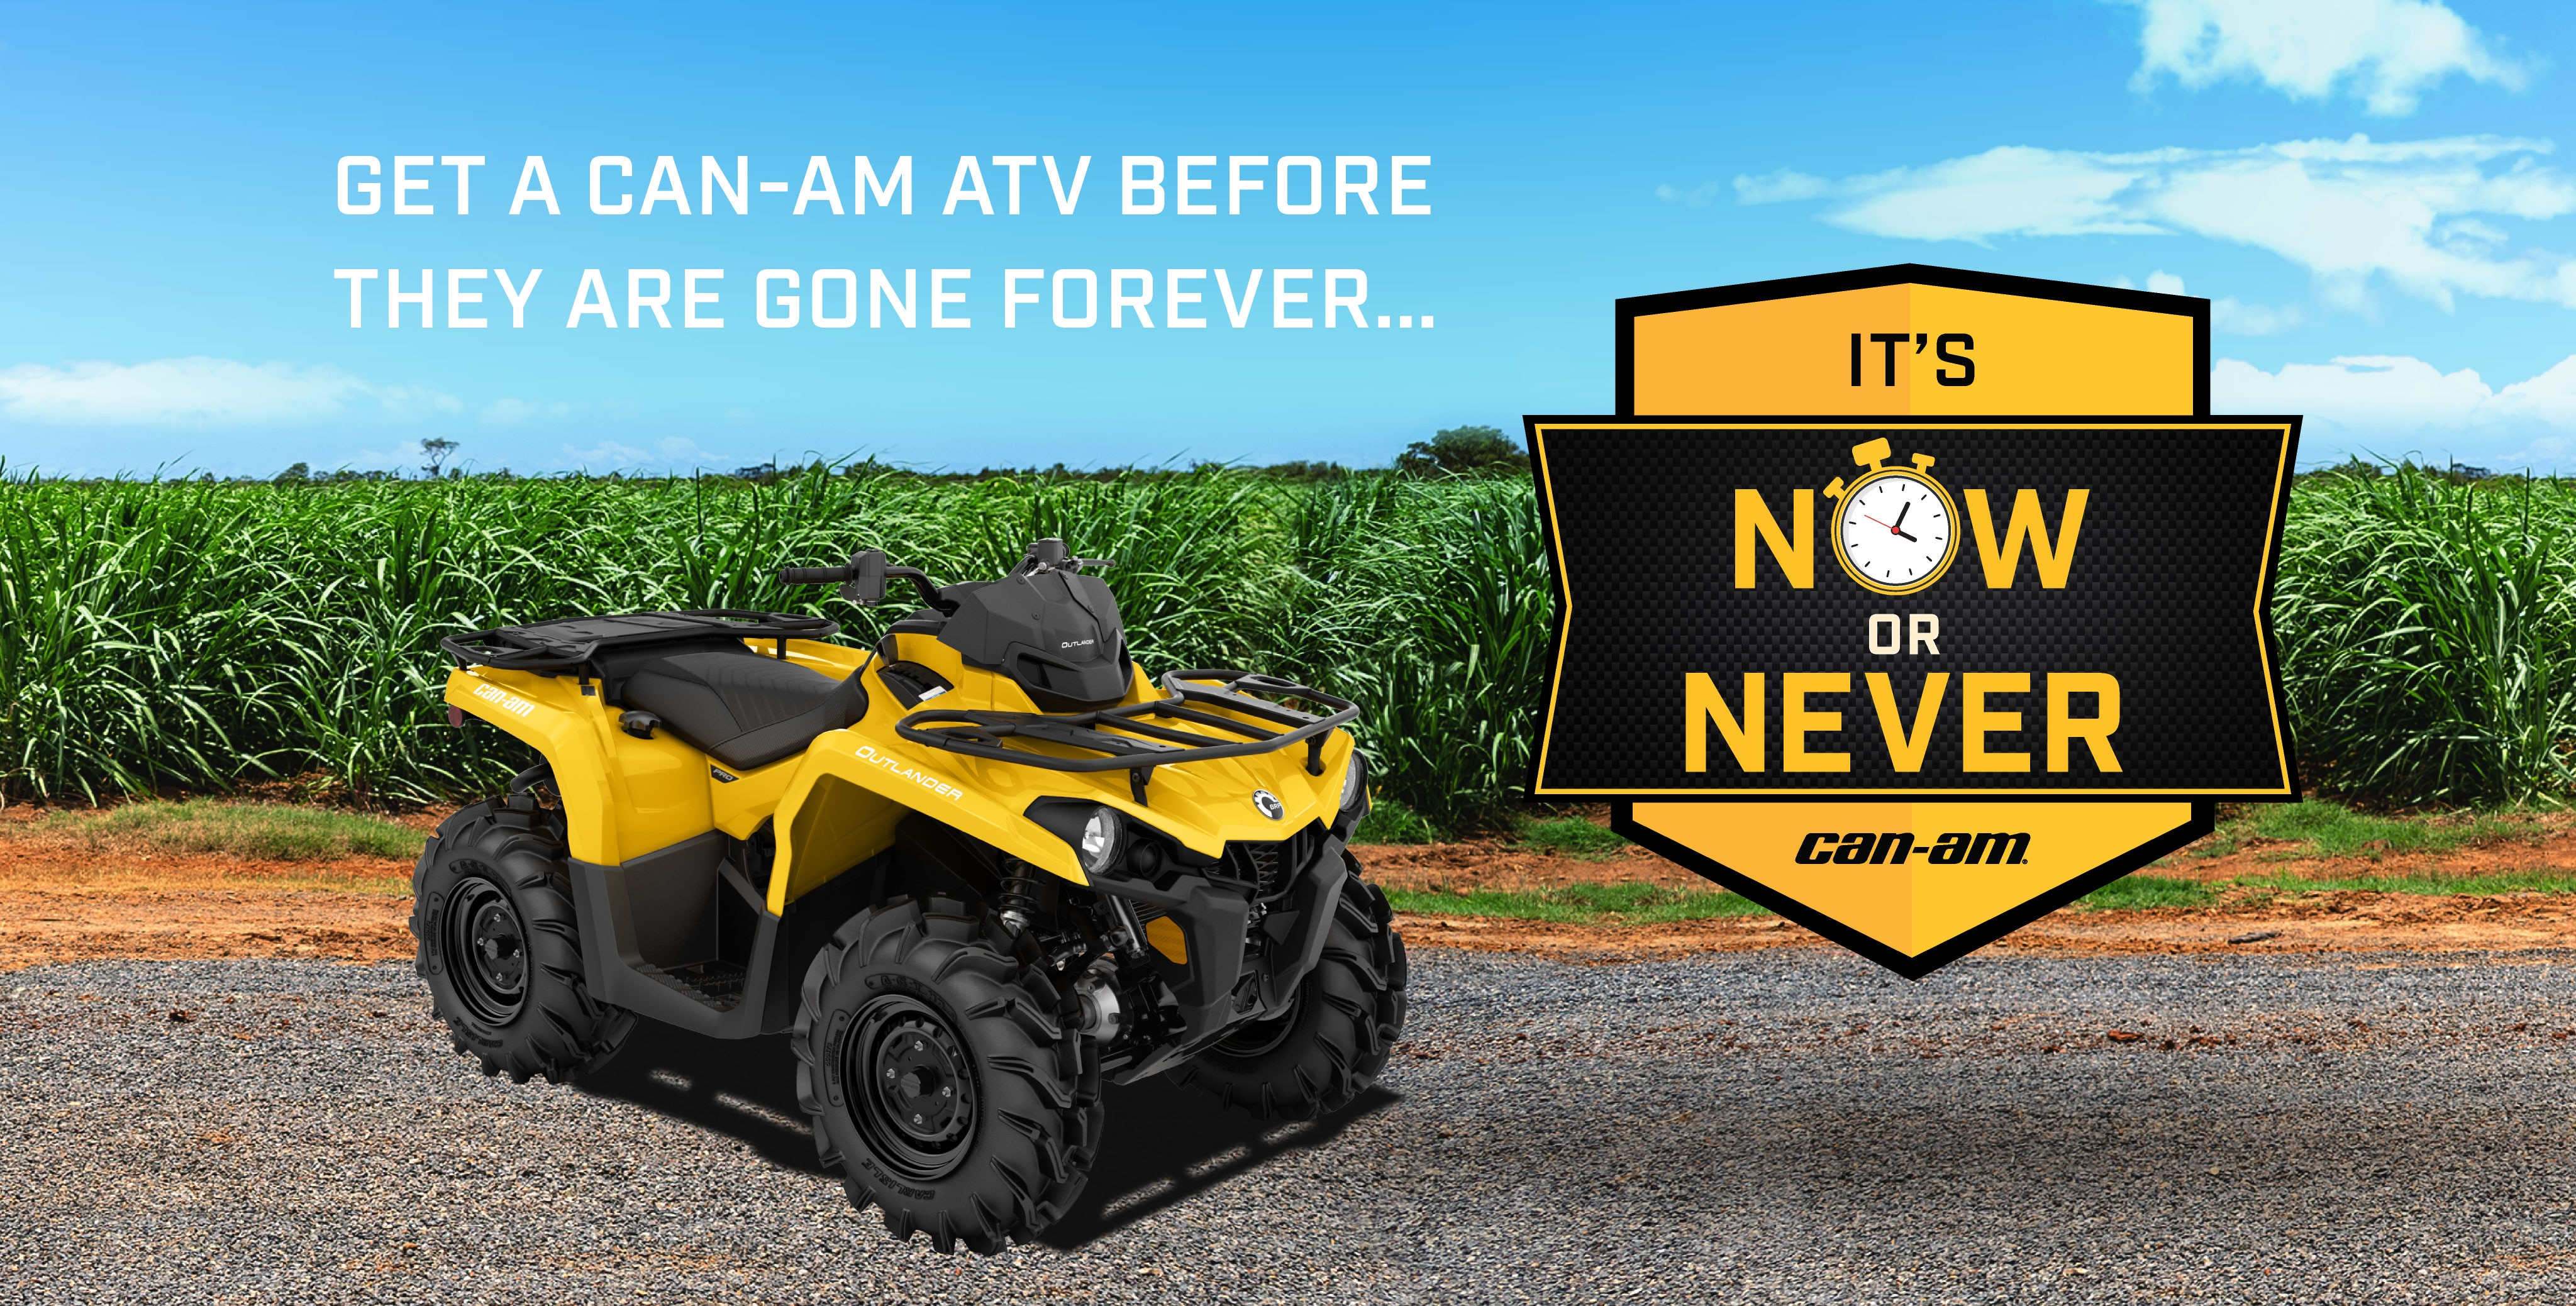 CAN-AM NOW OR NEVER